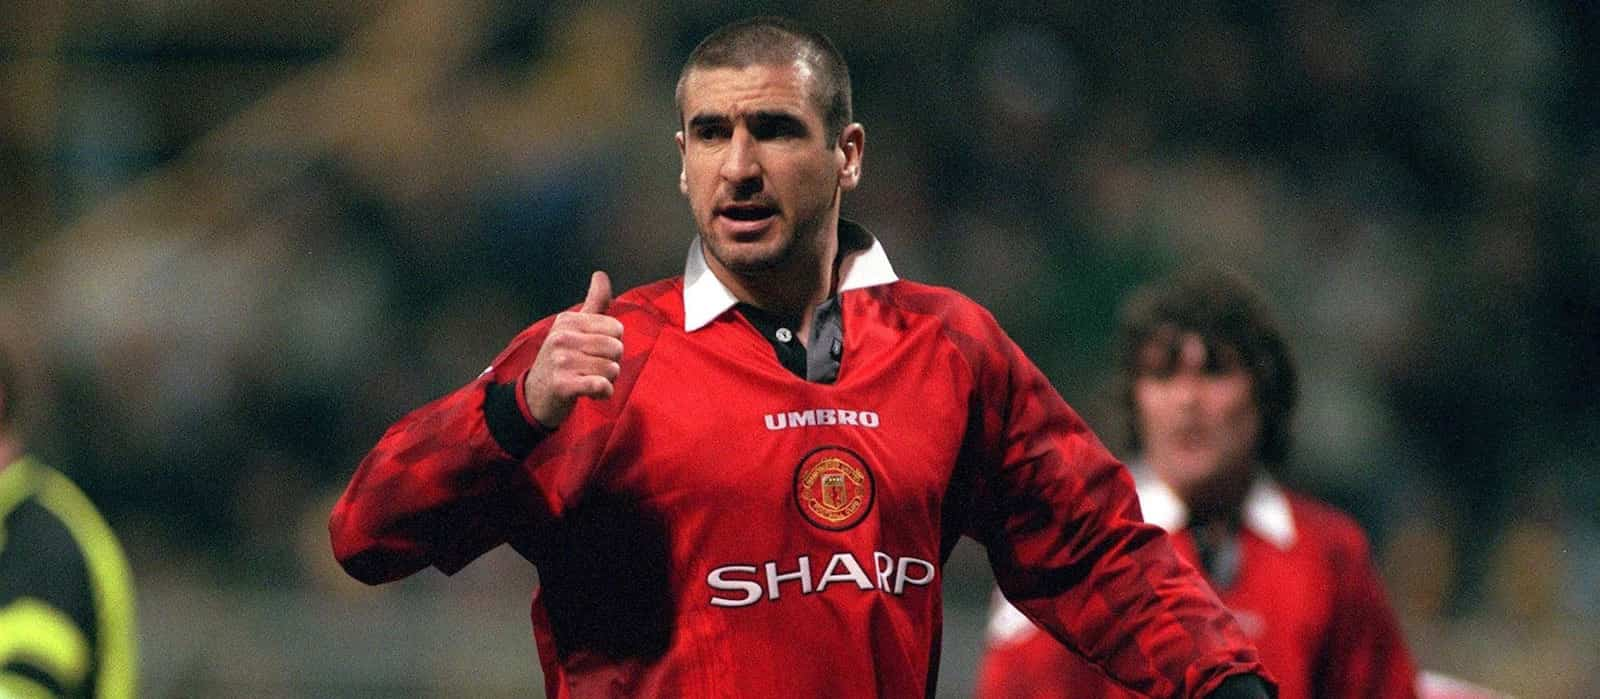 Eric Cantona on why he retired from football aged just 30 years old